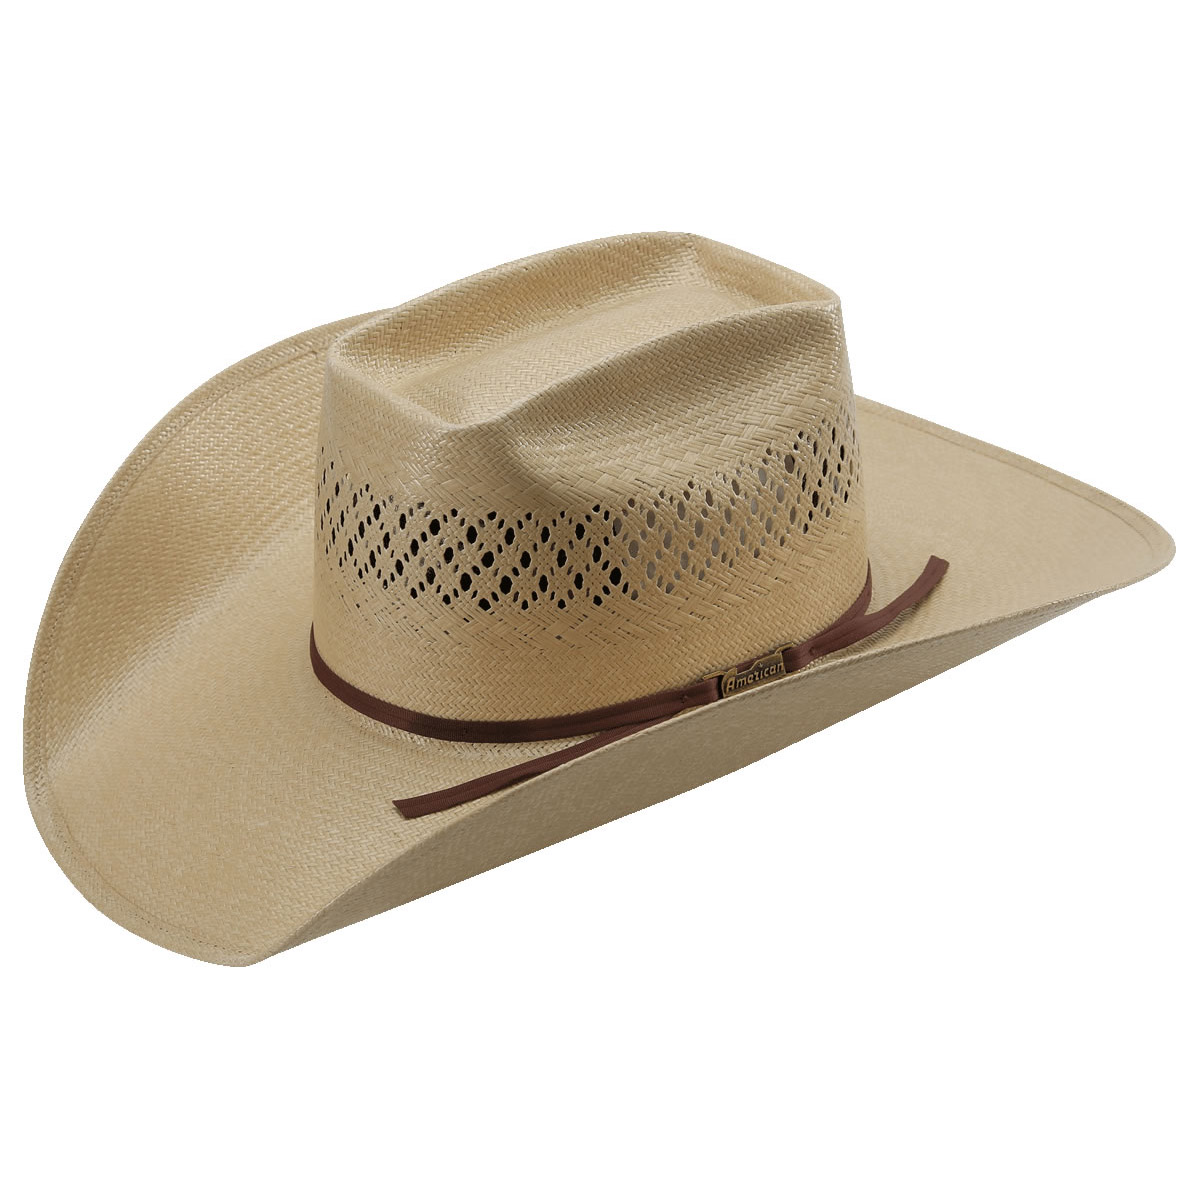 Pungo Ridge - American Hat Co 20☆ Fancy Vented Straw Hat - Tan ... 1d1f515fc9e